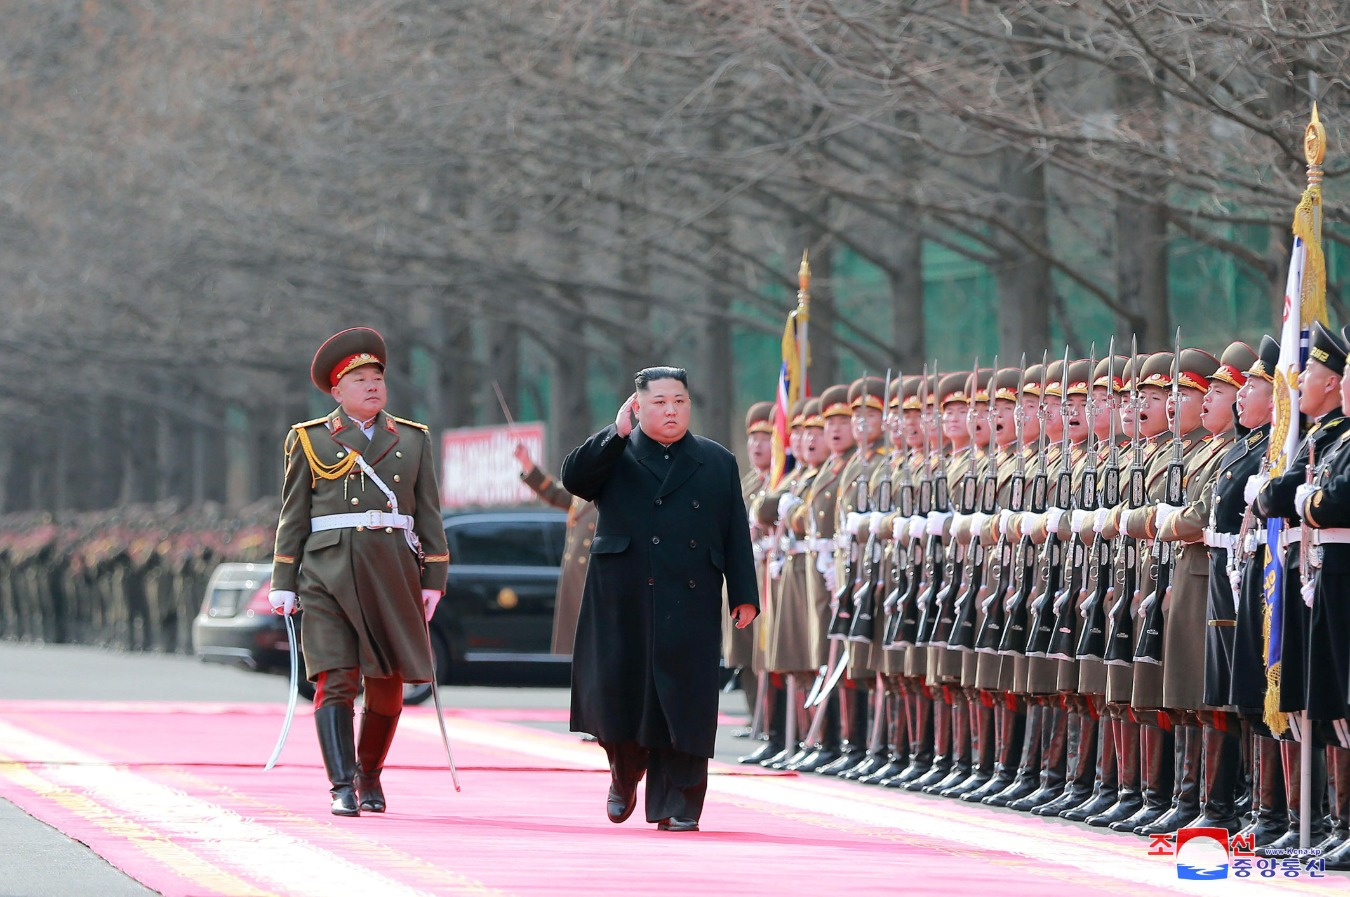 South Korea's Military Is Far Stronger Than North Korea's But It Isn't All Good News The